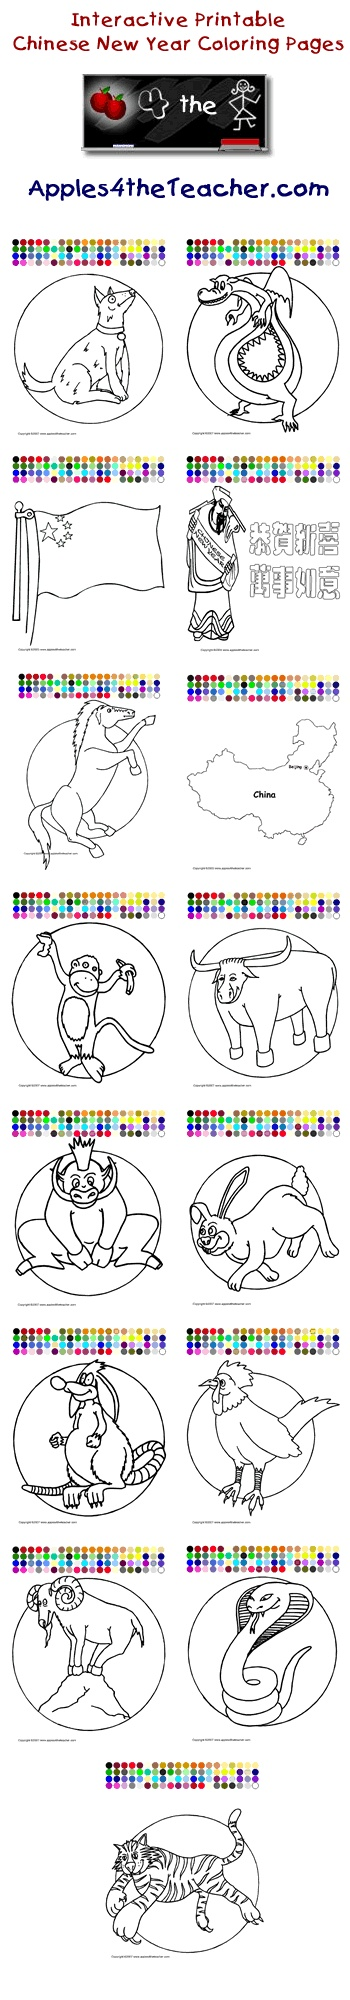 chinese new year coloring pages animals of the chinese zodiac map of china